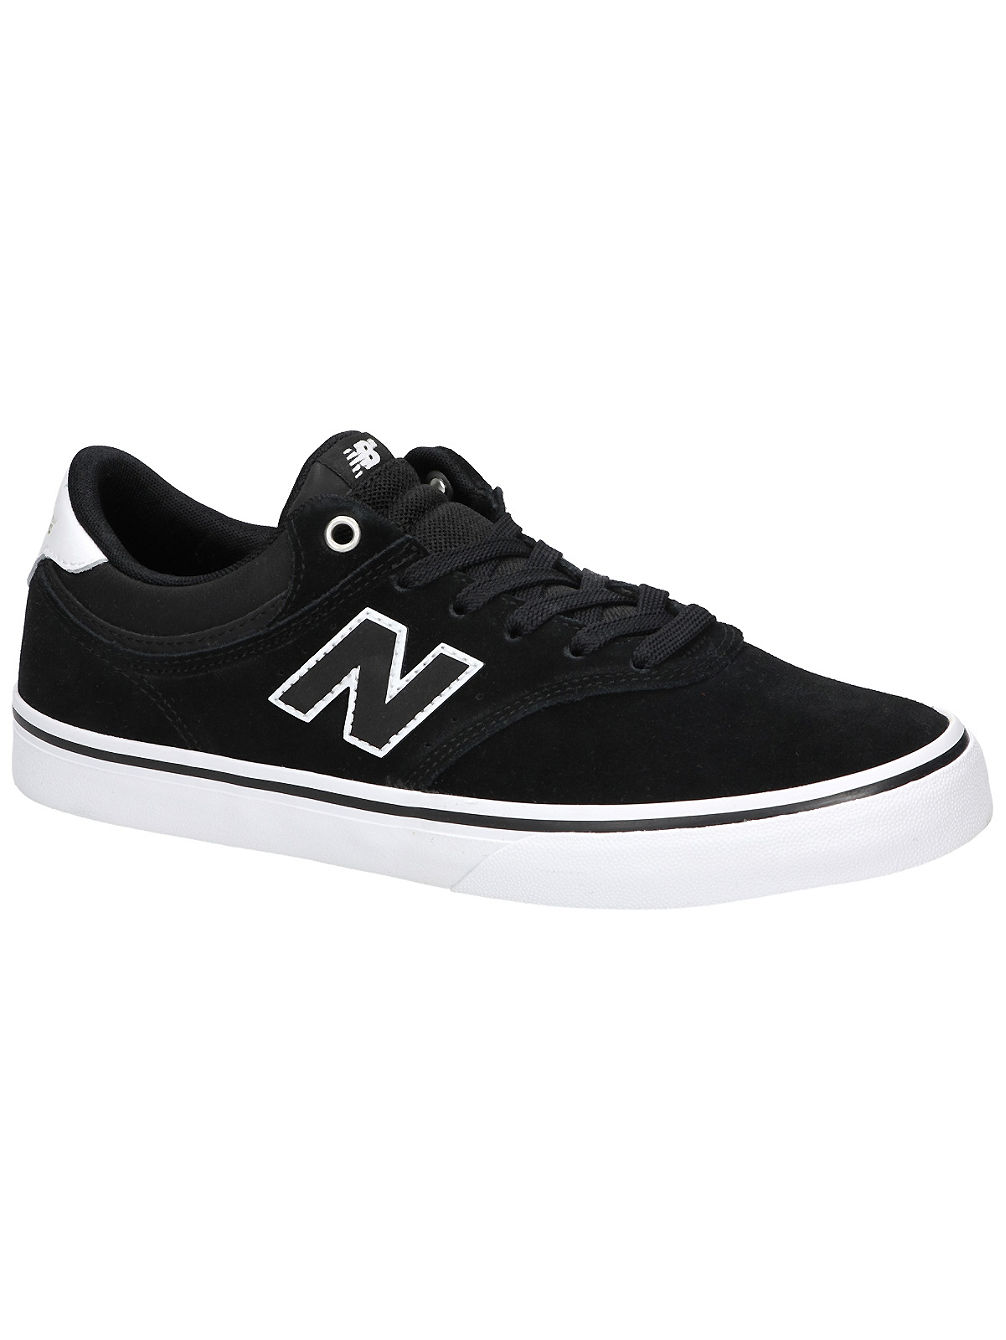 255 Numeric Skate Shoes